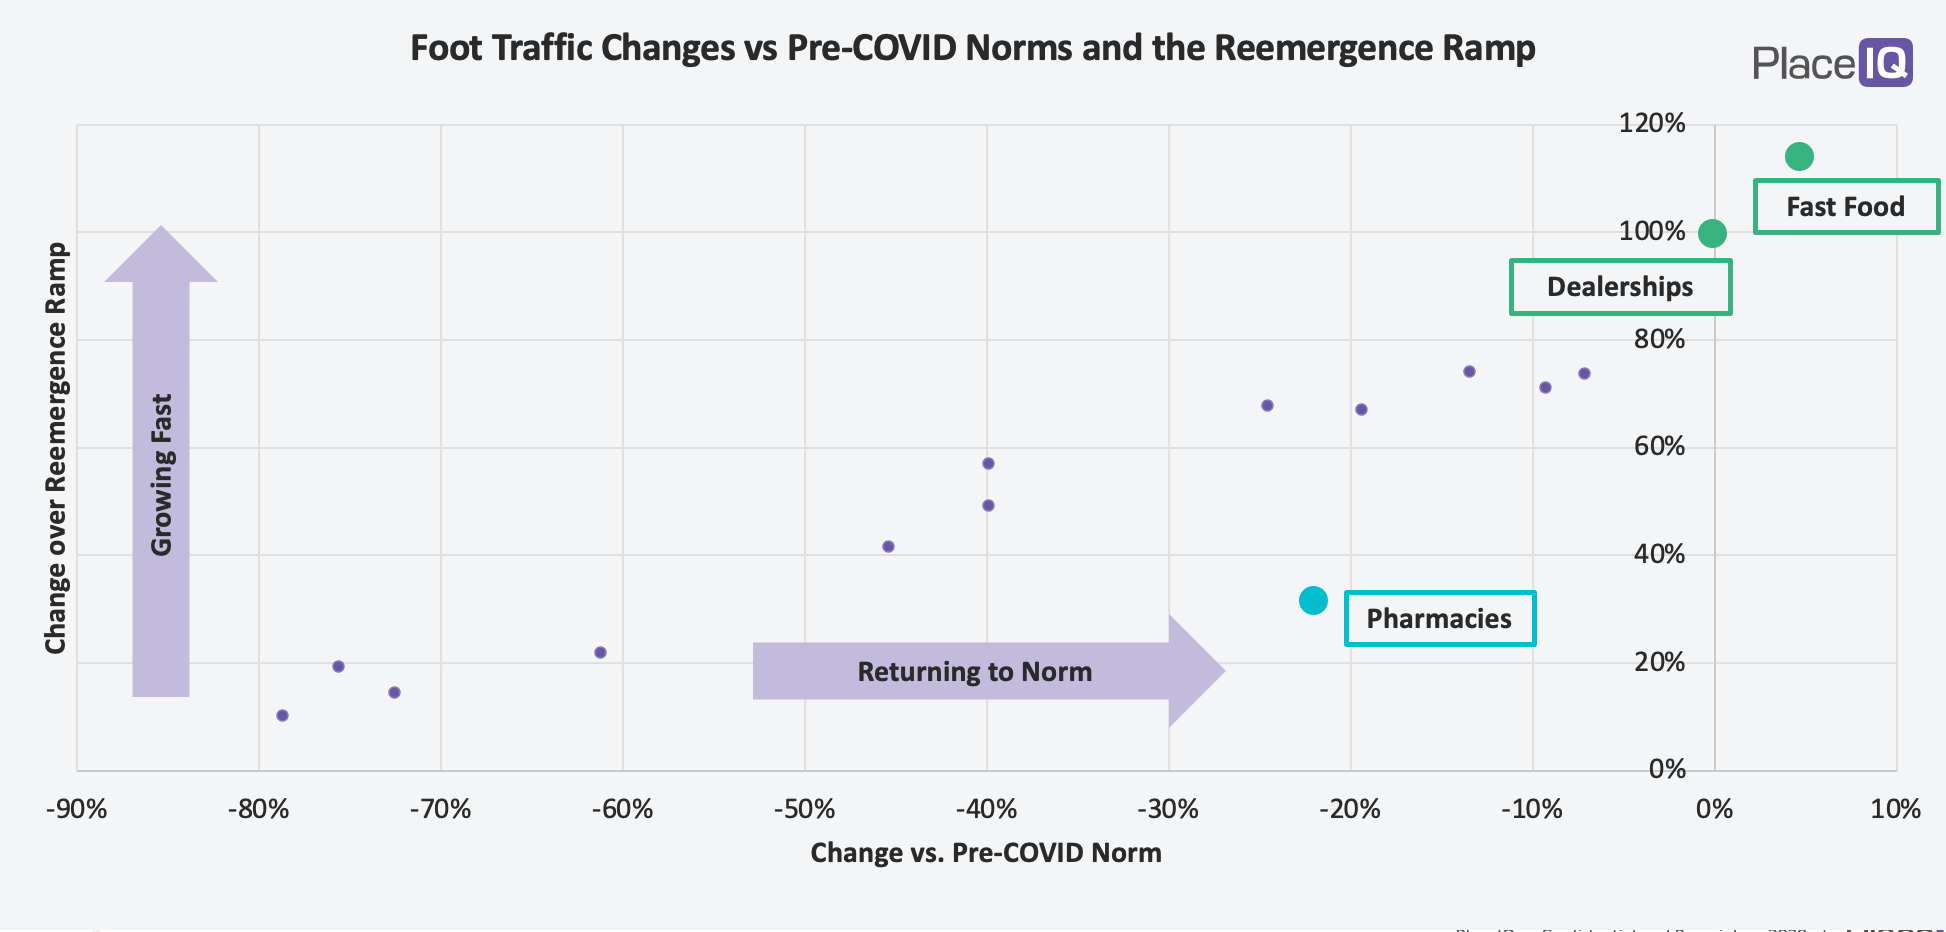 CHART: Foot Traffic Changes vs. Pre-COVID Norms and the Reemergence Ramp